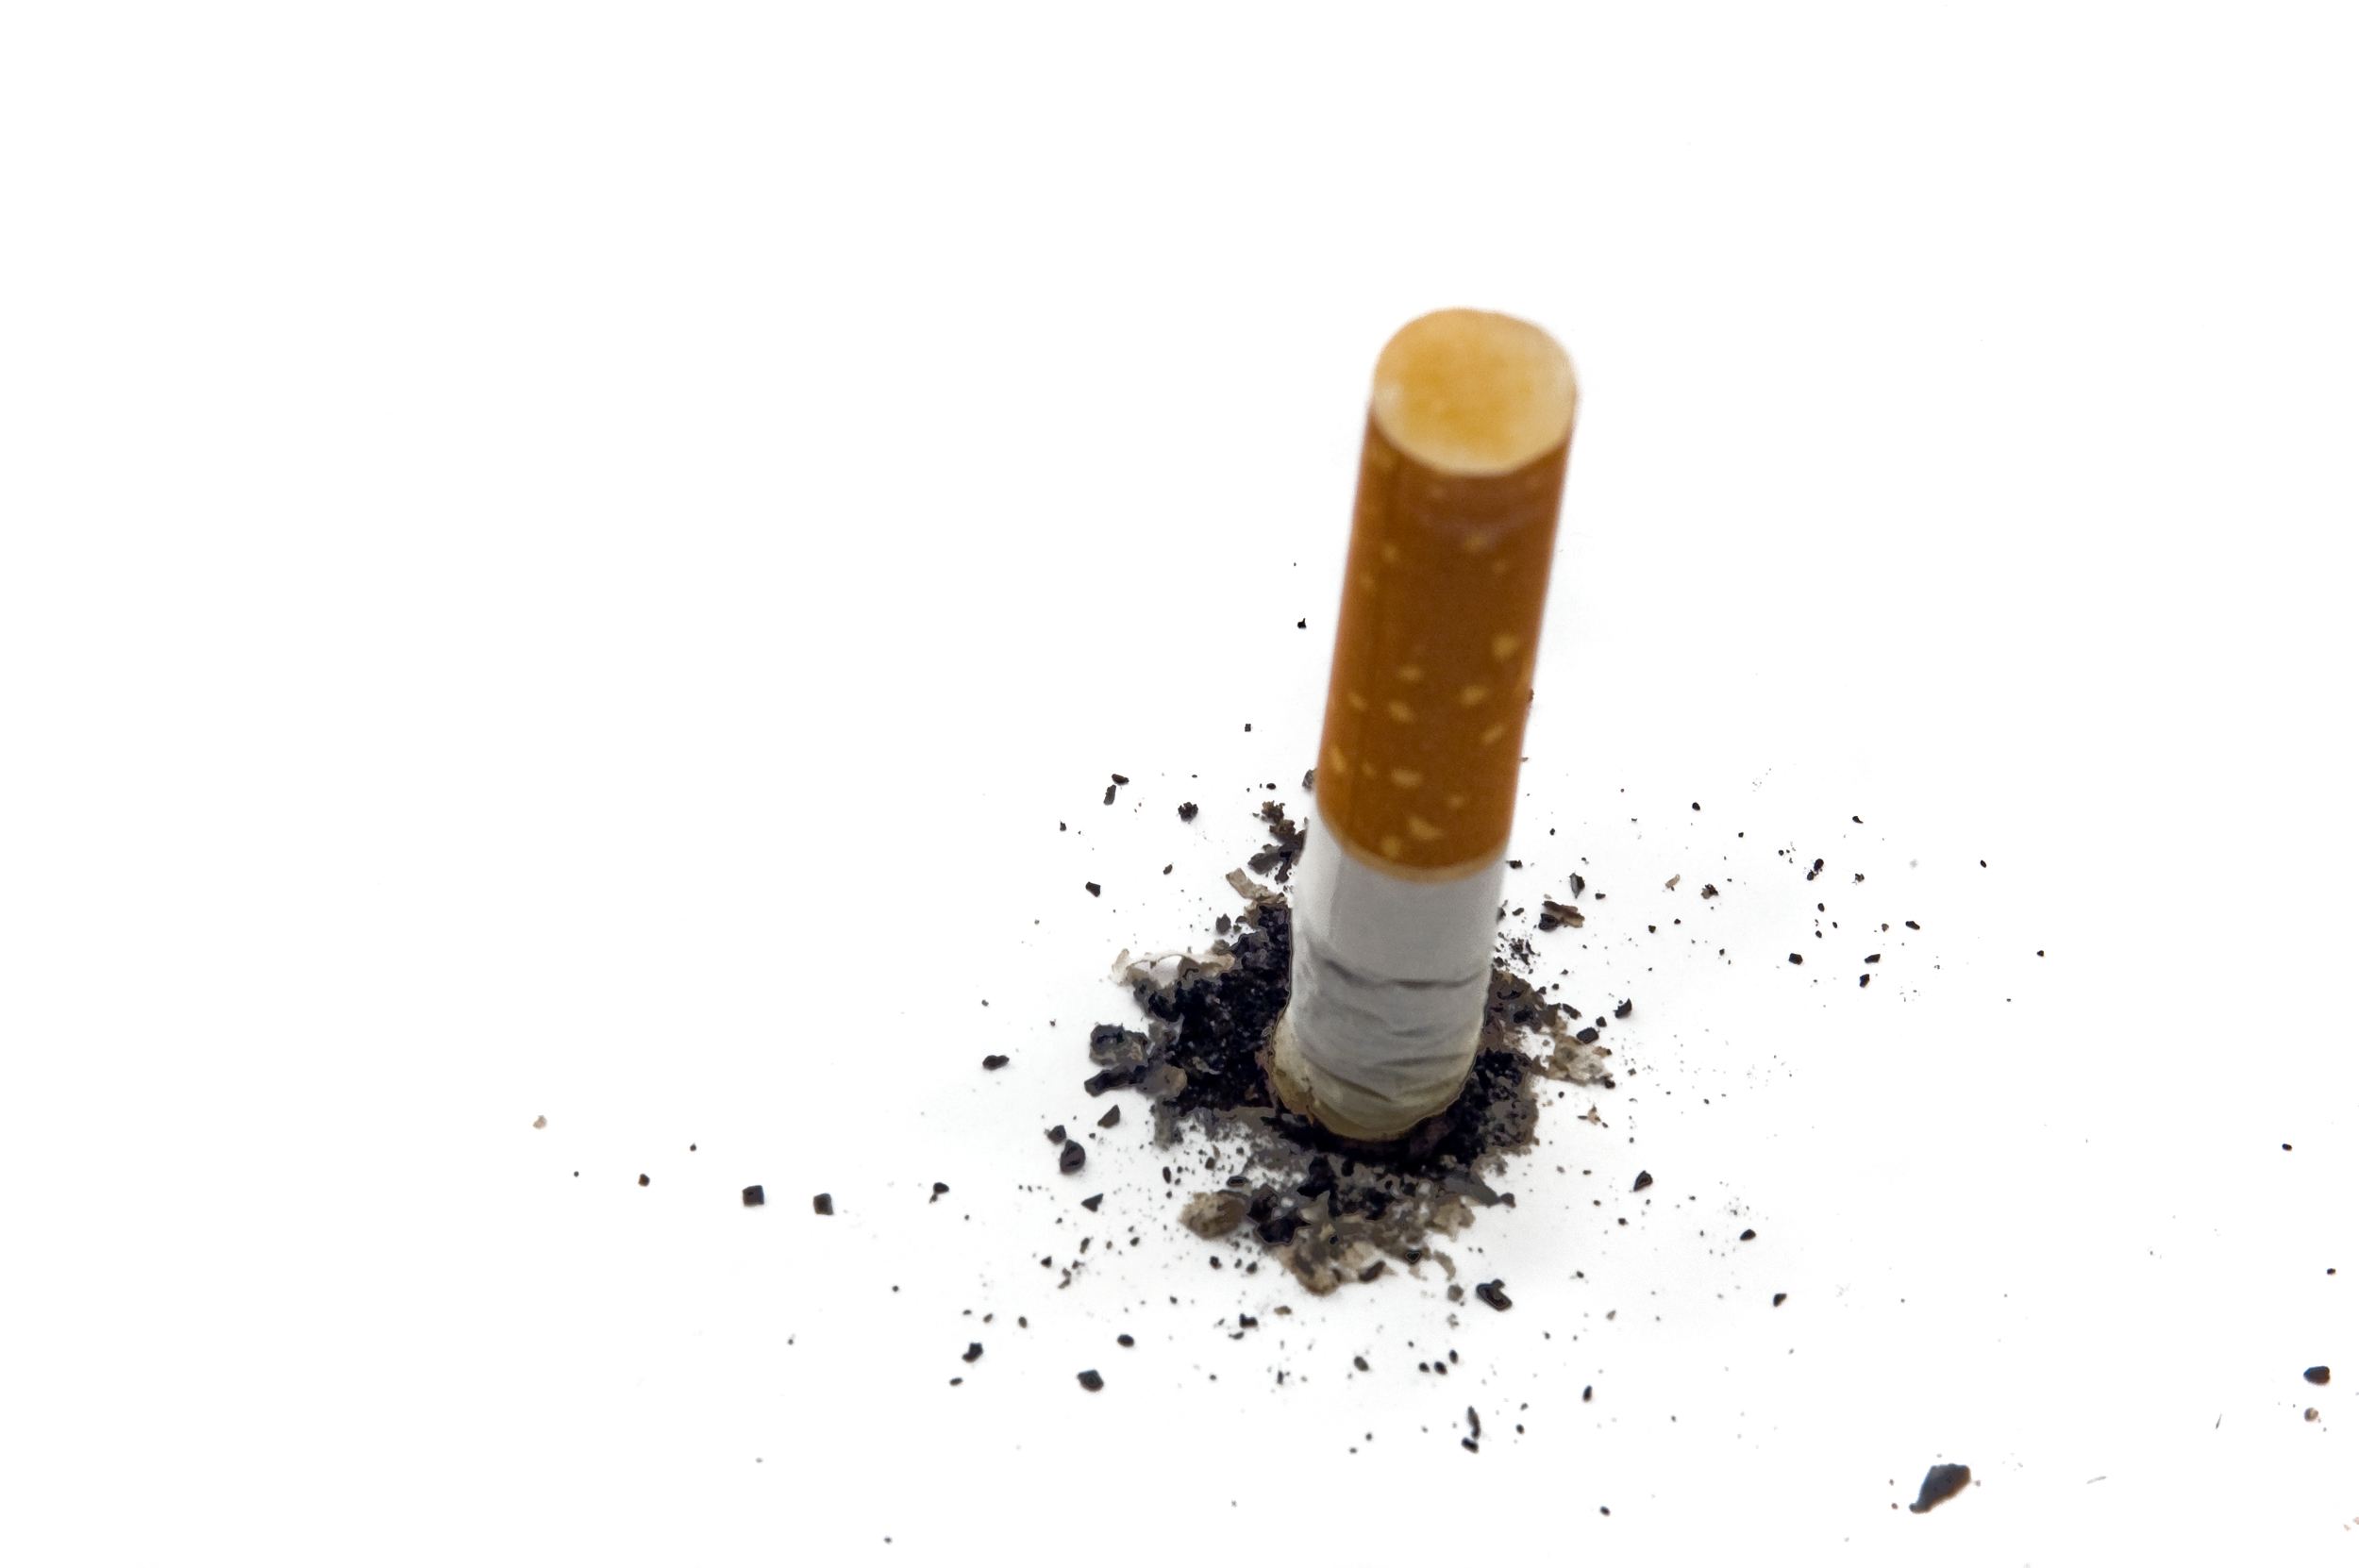 quit smoking! Each year about 46% of smokers in the us try to quit, with around 10% of them being successful in the short term 1,2the longer-term success rate for stopping smoking without anything to help is only about 5% 3smoking cessation medicines increase the success rate and reduce the withdrawal feelings including cravings.